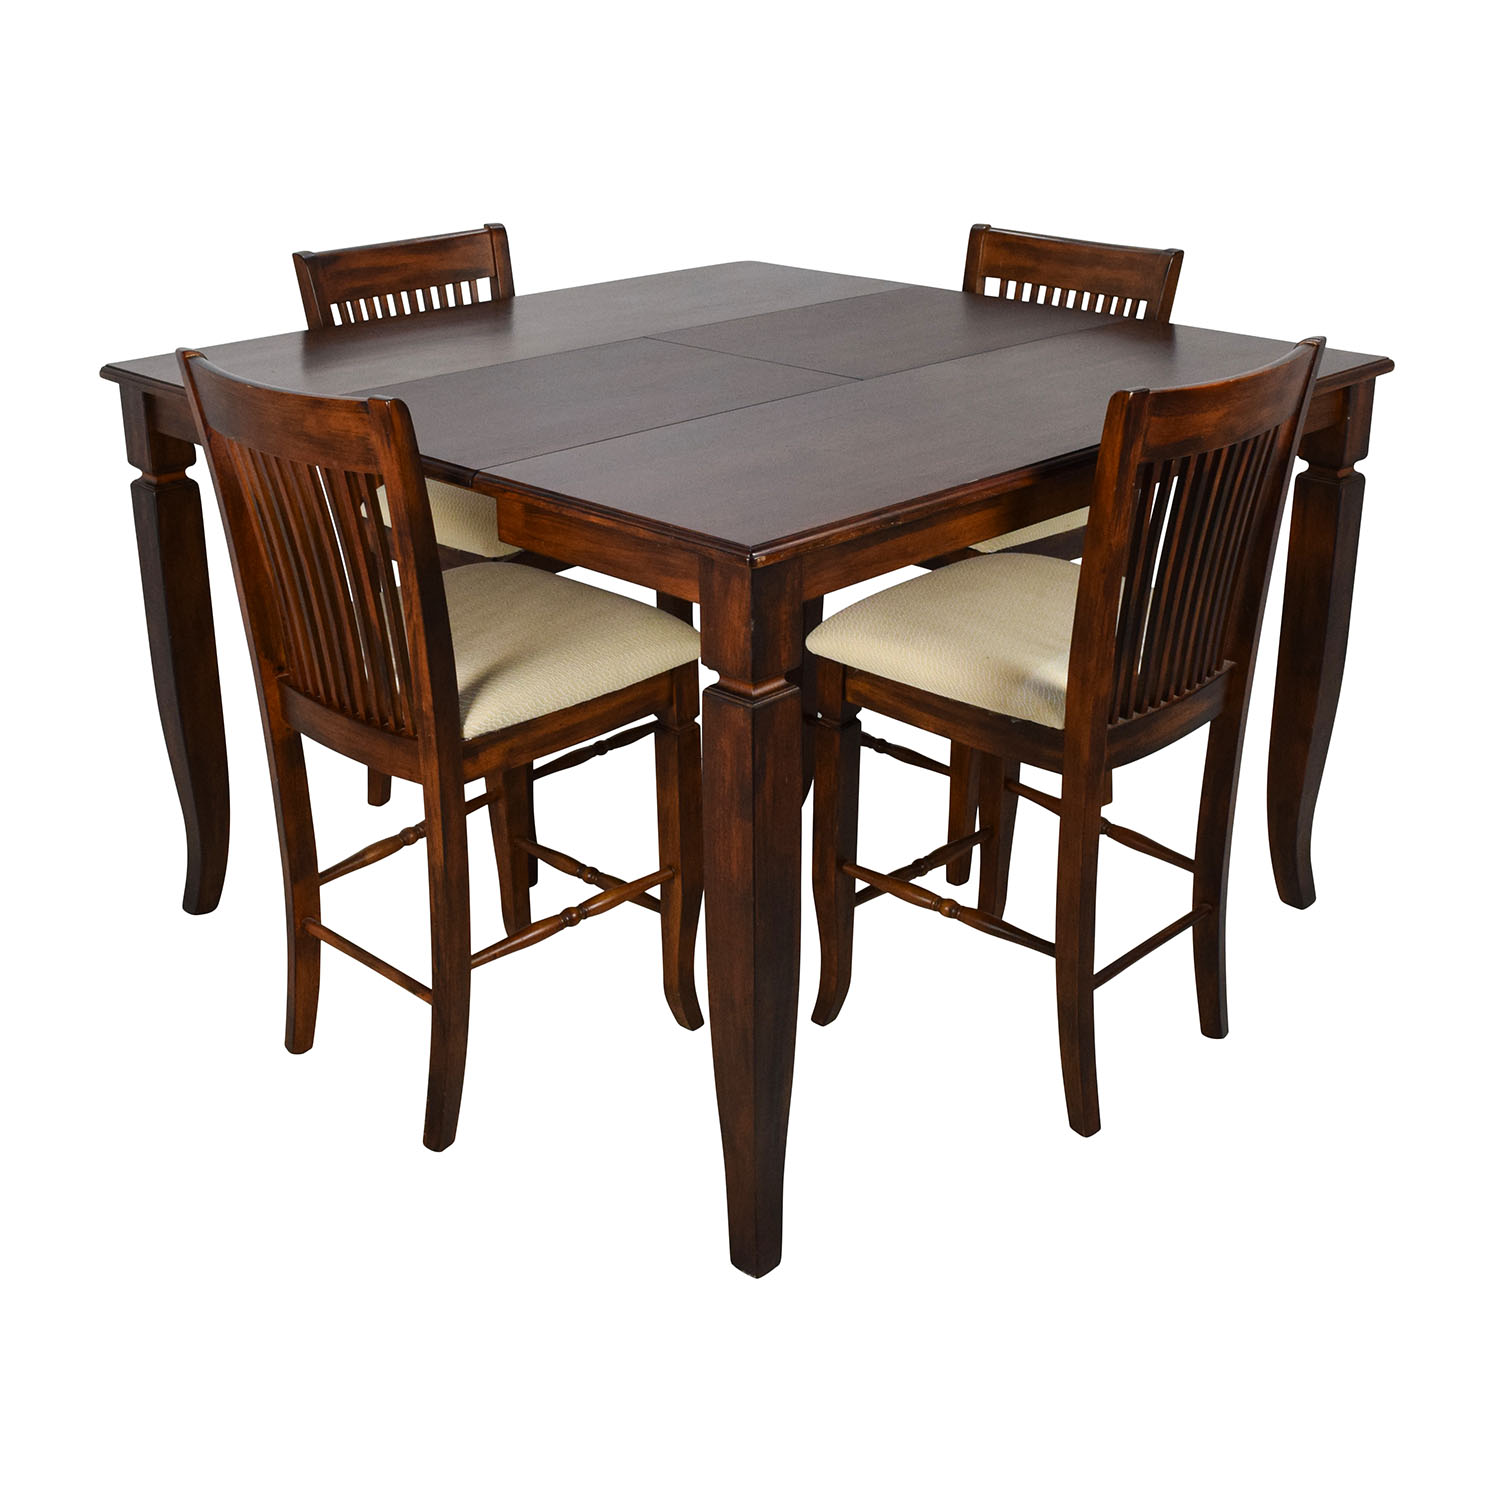 75 off tall extendable dining room table set tables - Extension tables dining room furniture ...